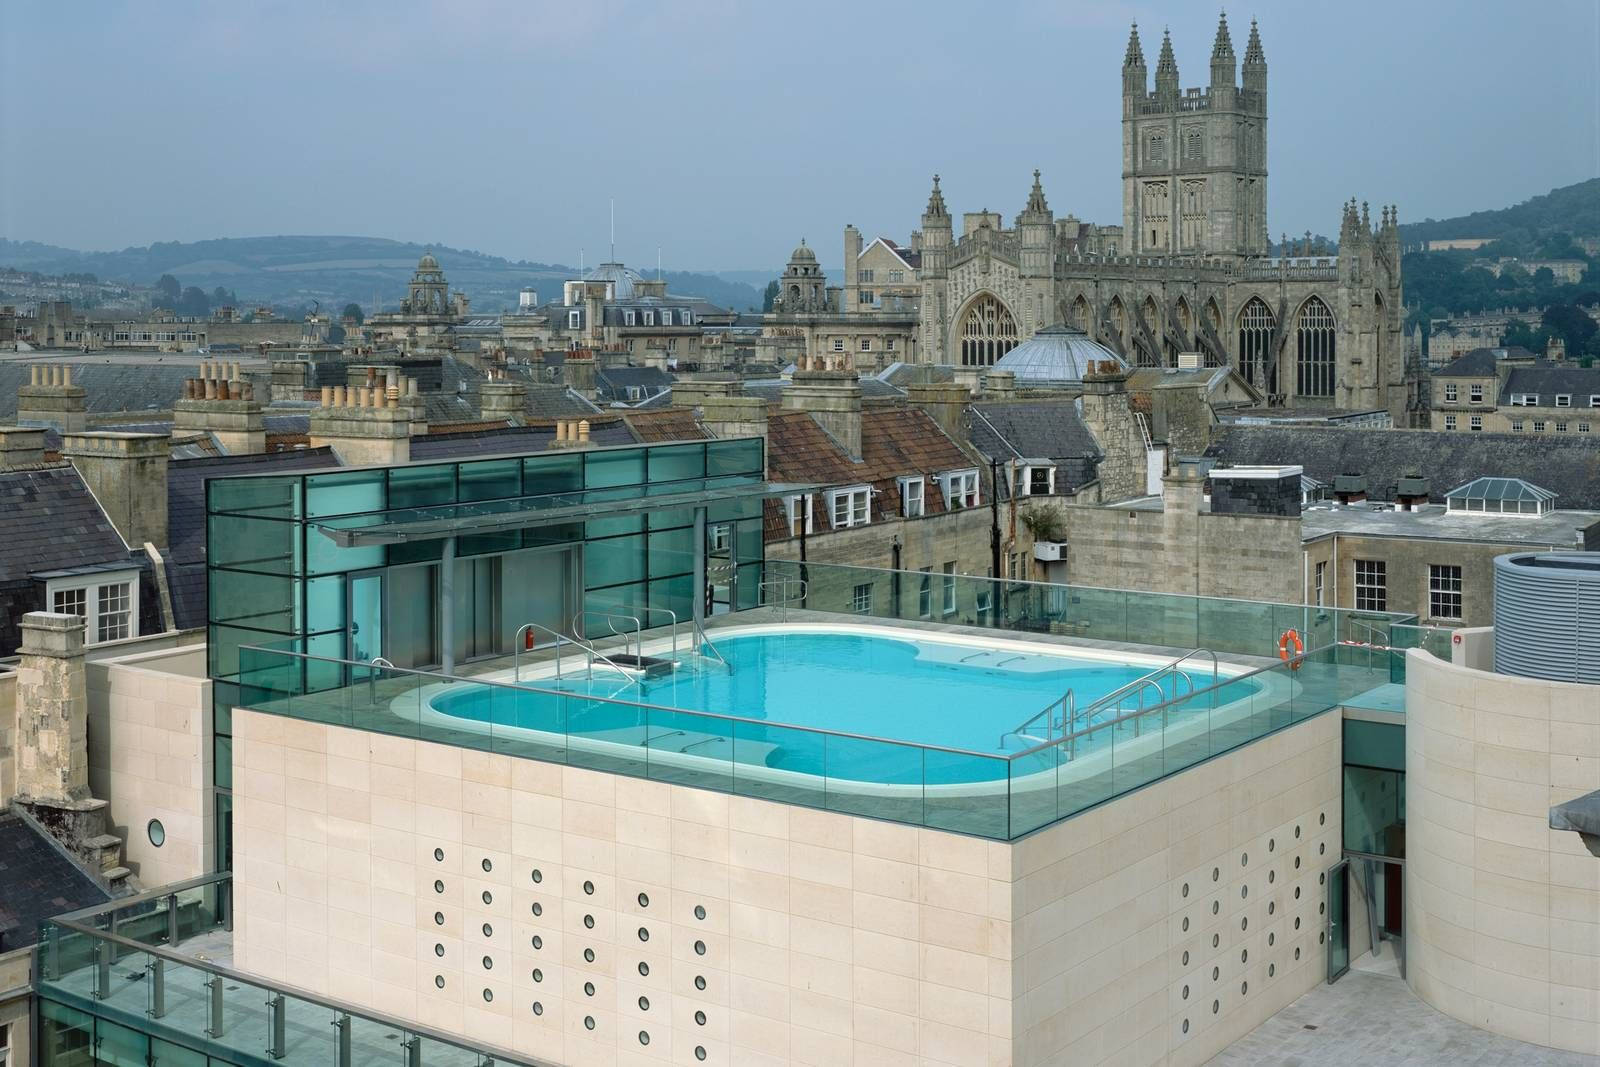 http://grimshaw-architects.com/project/thermae-bath-spa ...